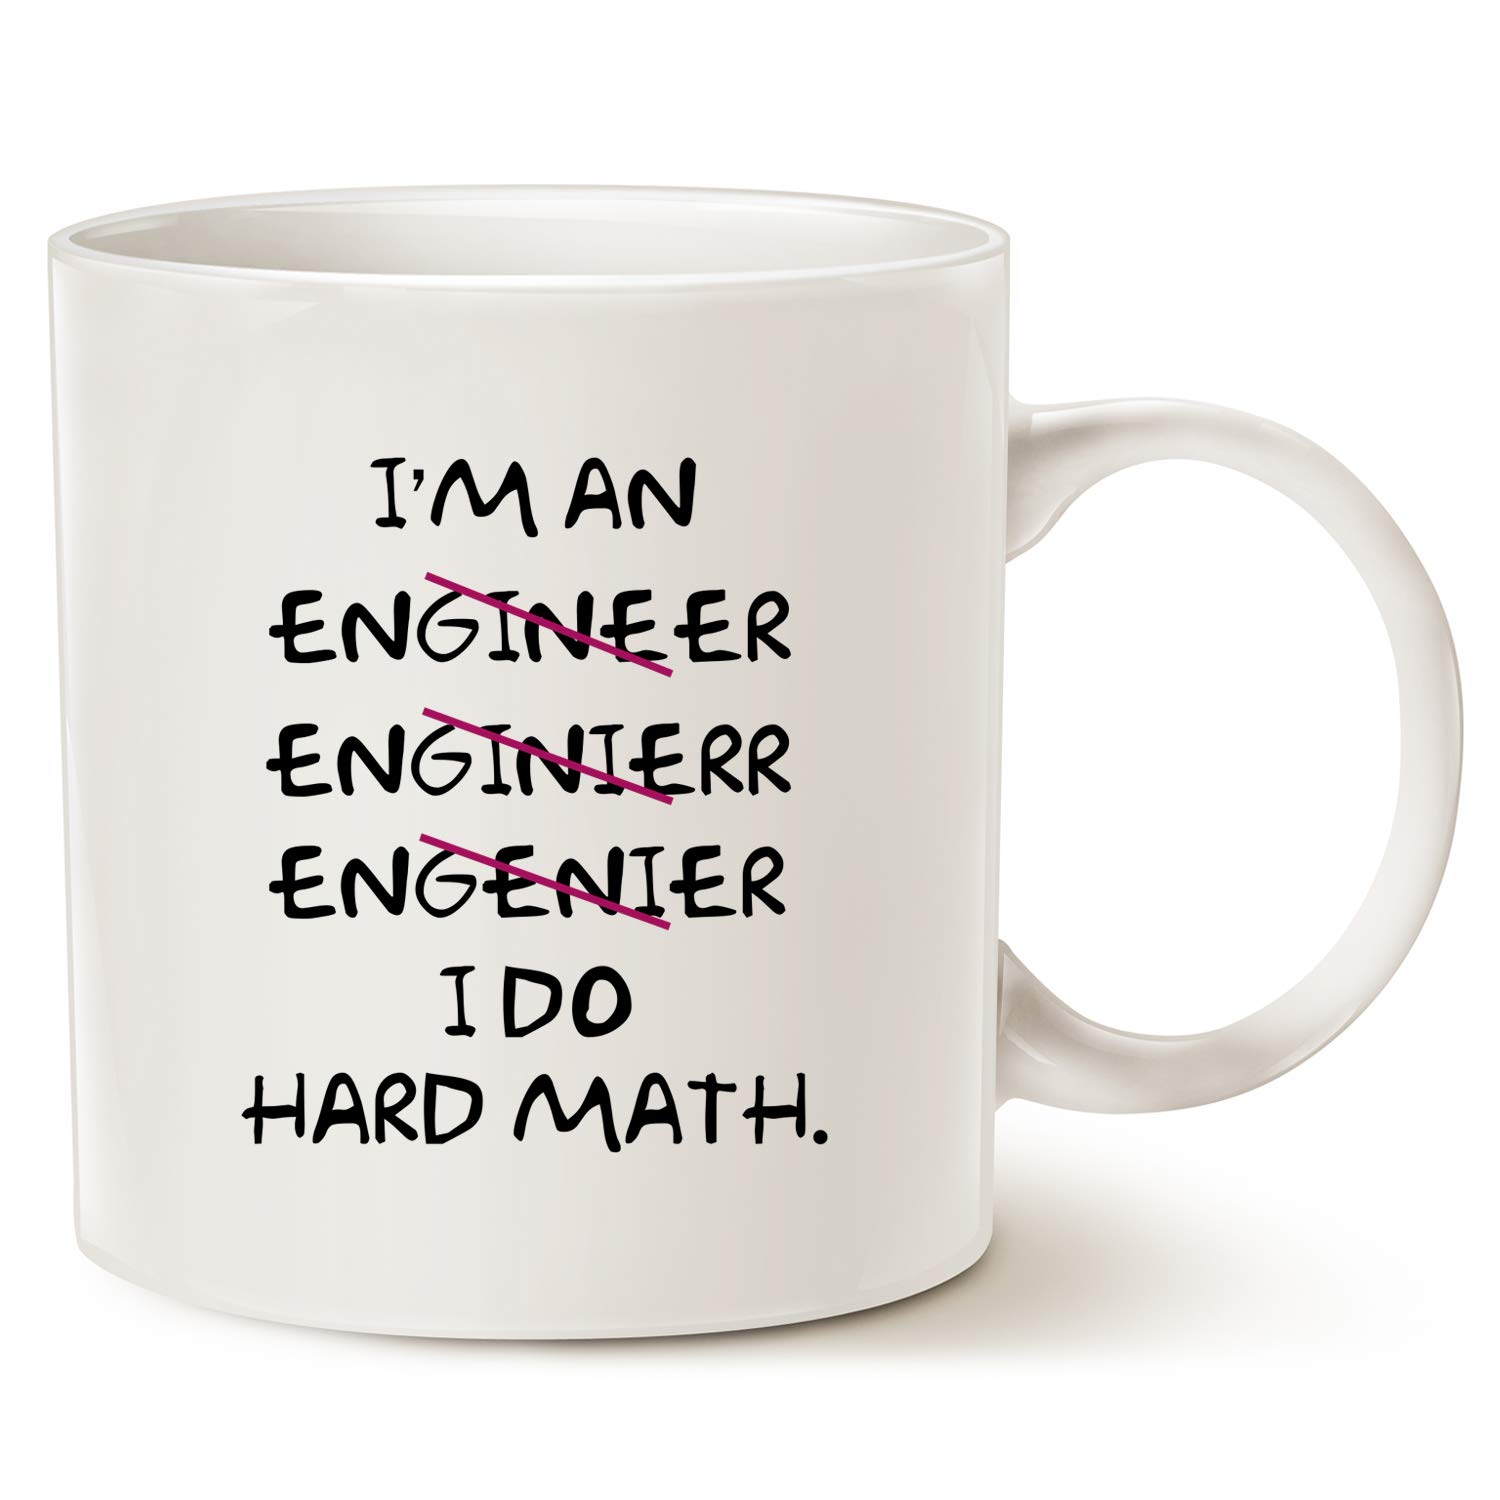 MAUAG Funny Coffee Mugs Wrong I'm an Engineer - I do hard math - Best Motivational And Inspirational Gifts, White 11 Oz by LaTazas